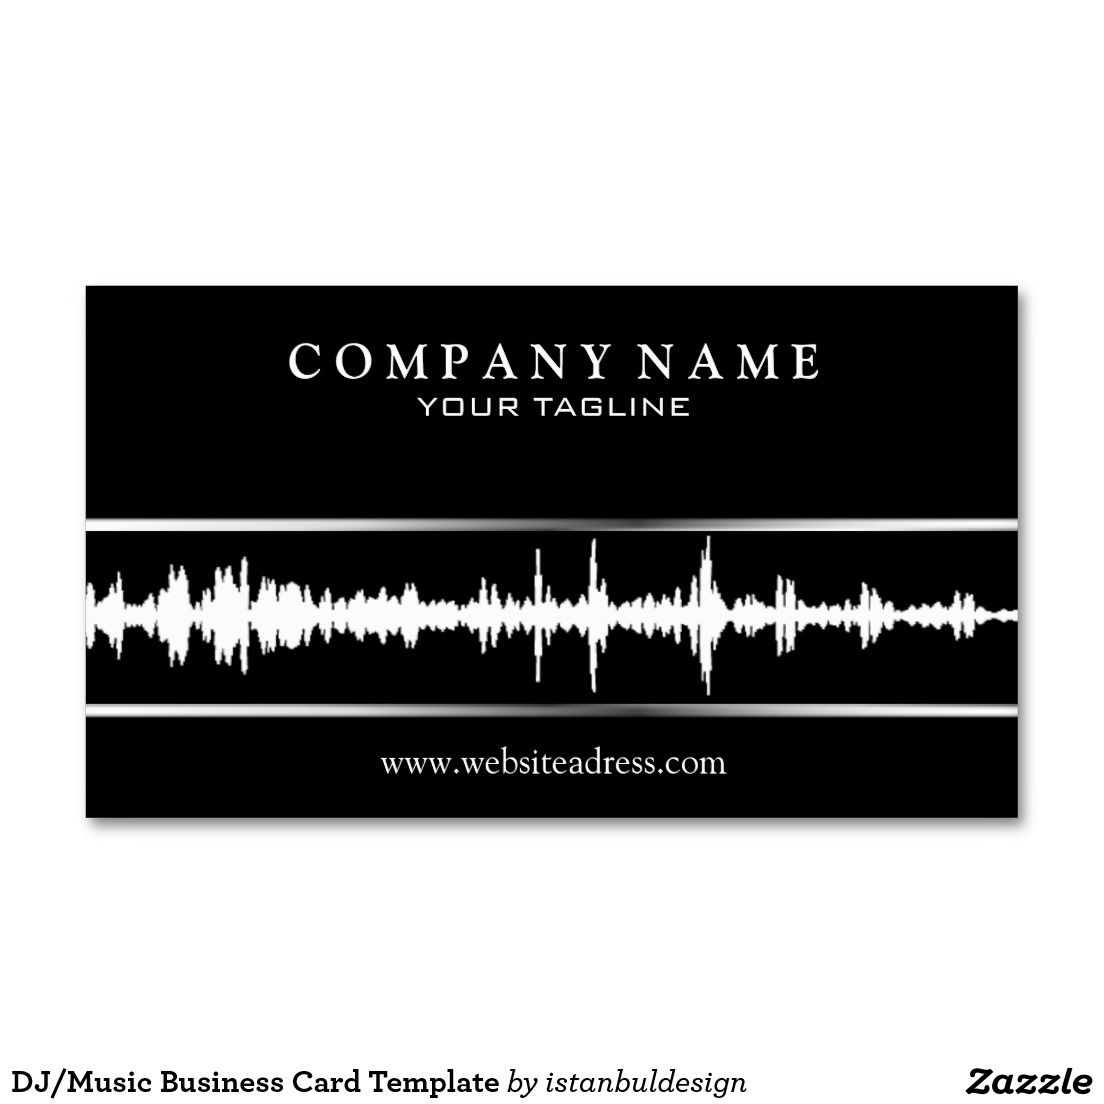 Djmusic business card template dj music card templates and djmusic business card template magicingreecefo Image collections